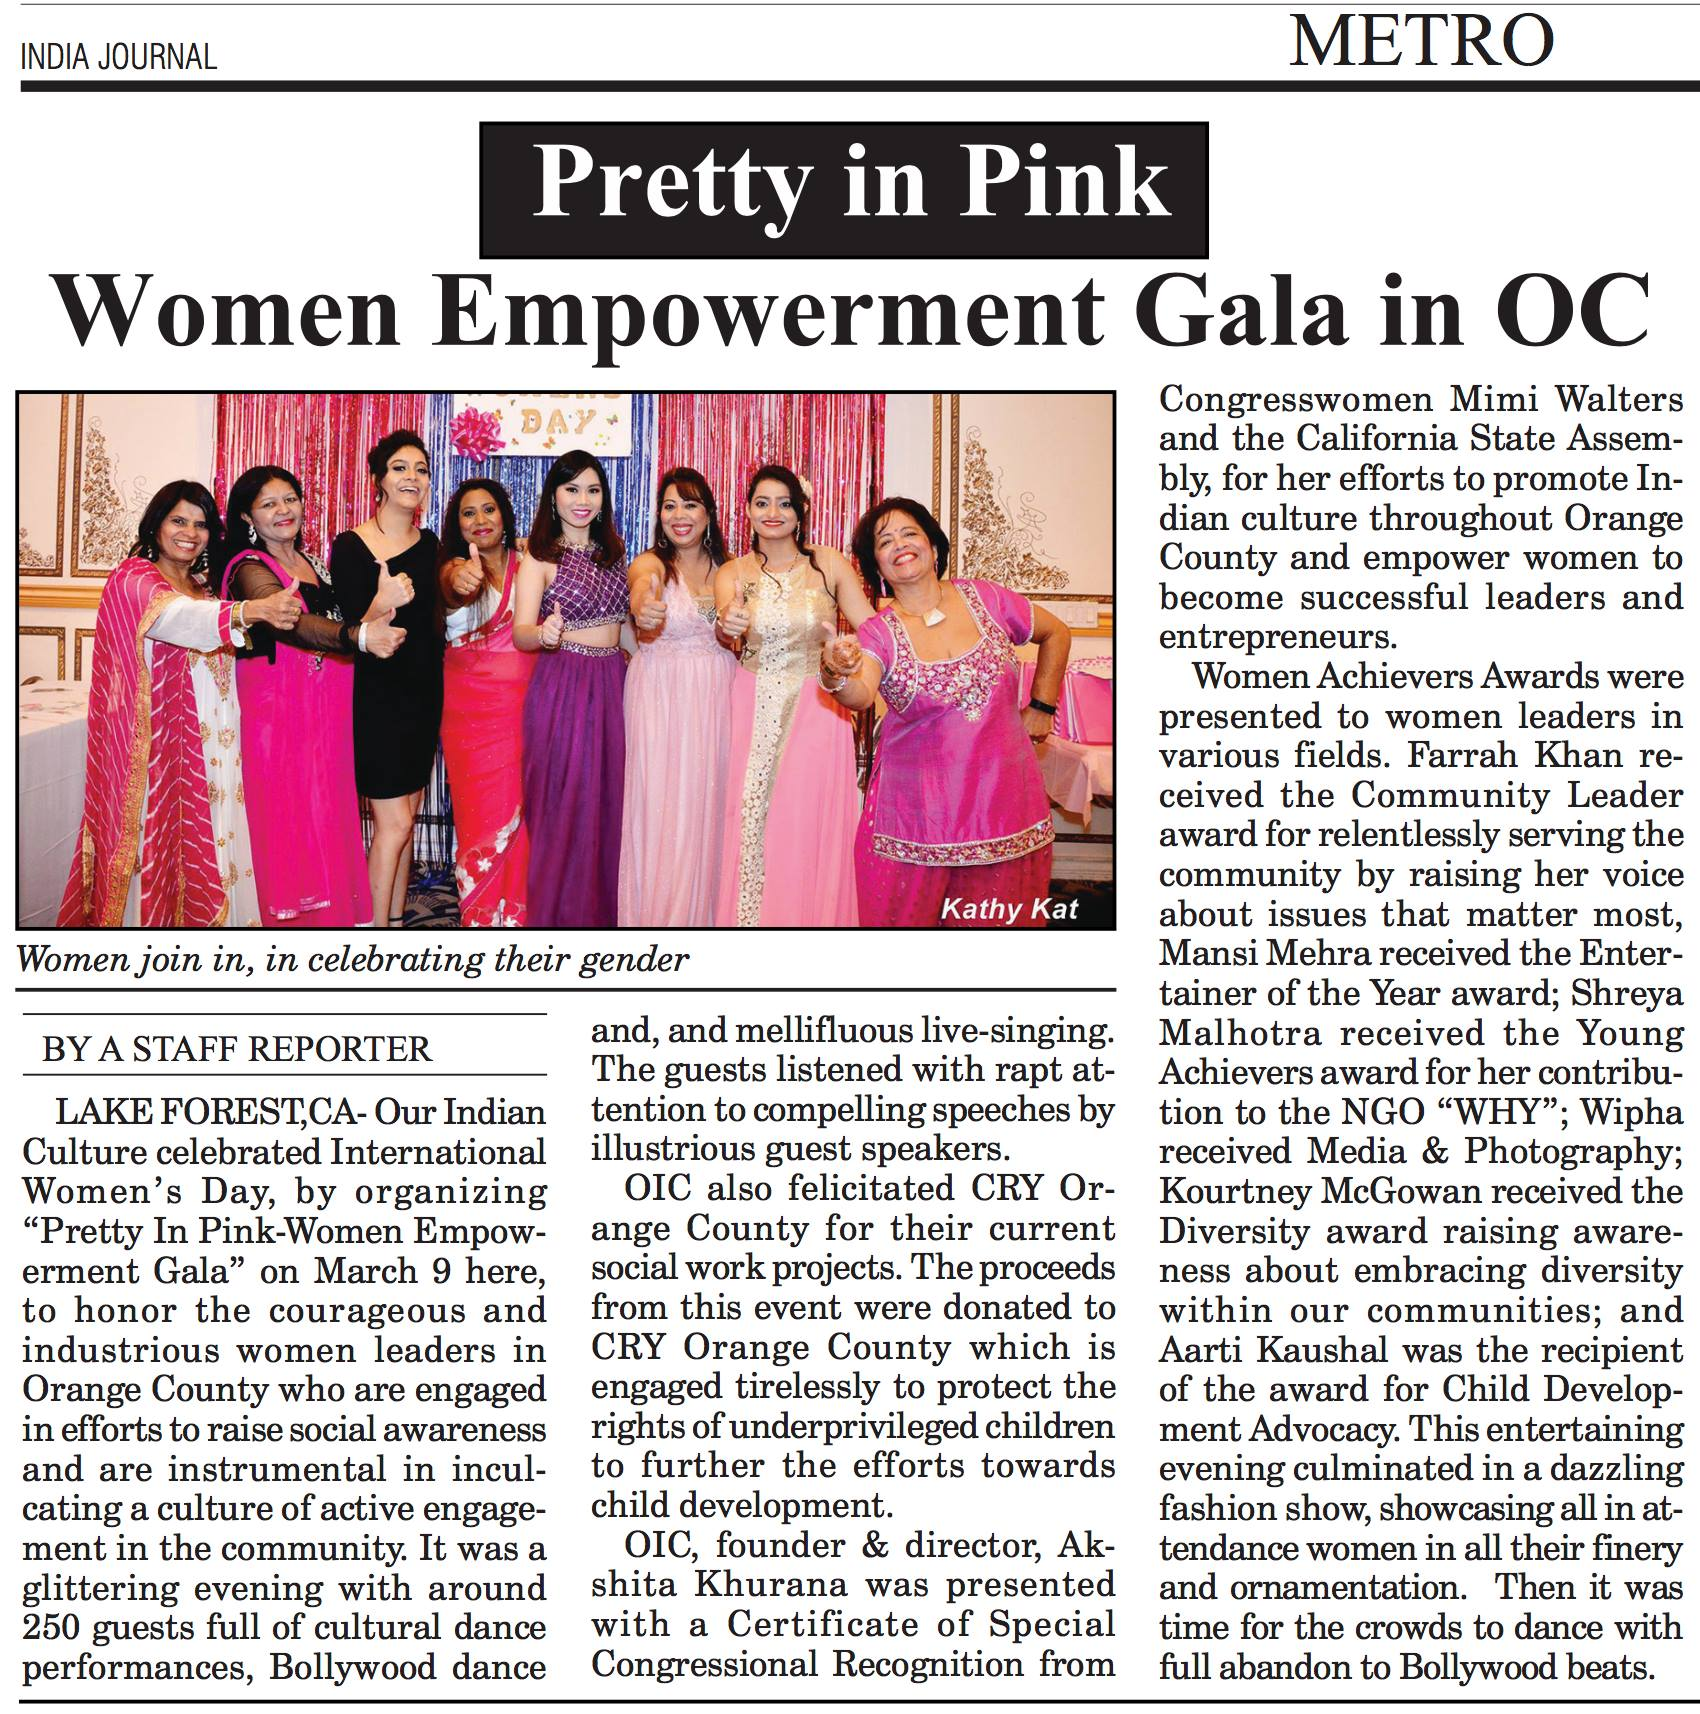 Pretty In Pink Women Empowerment Gala 2018 Organized By Our Indian Culture